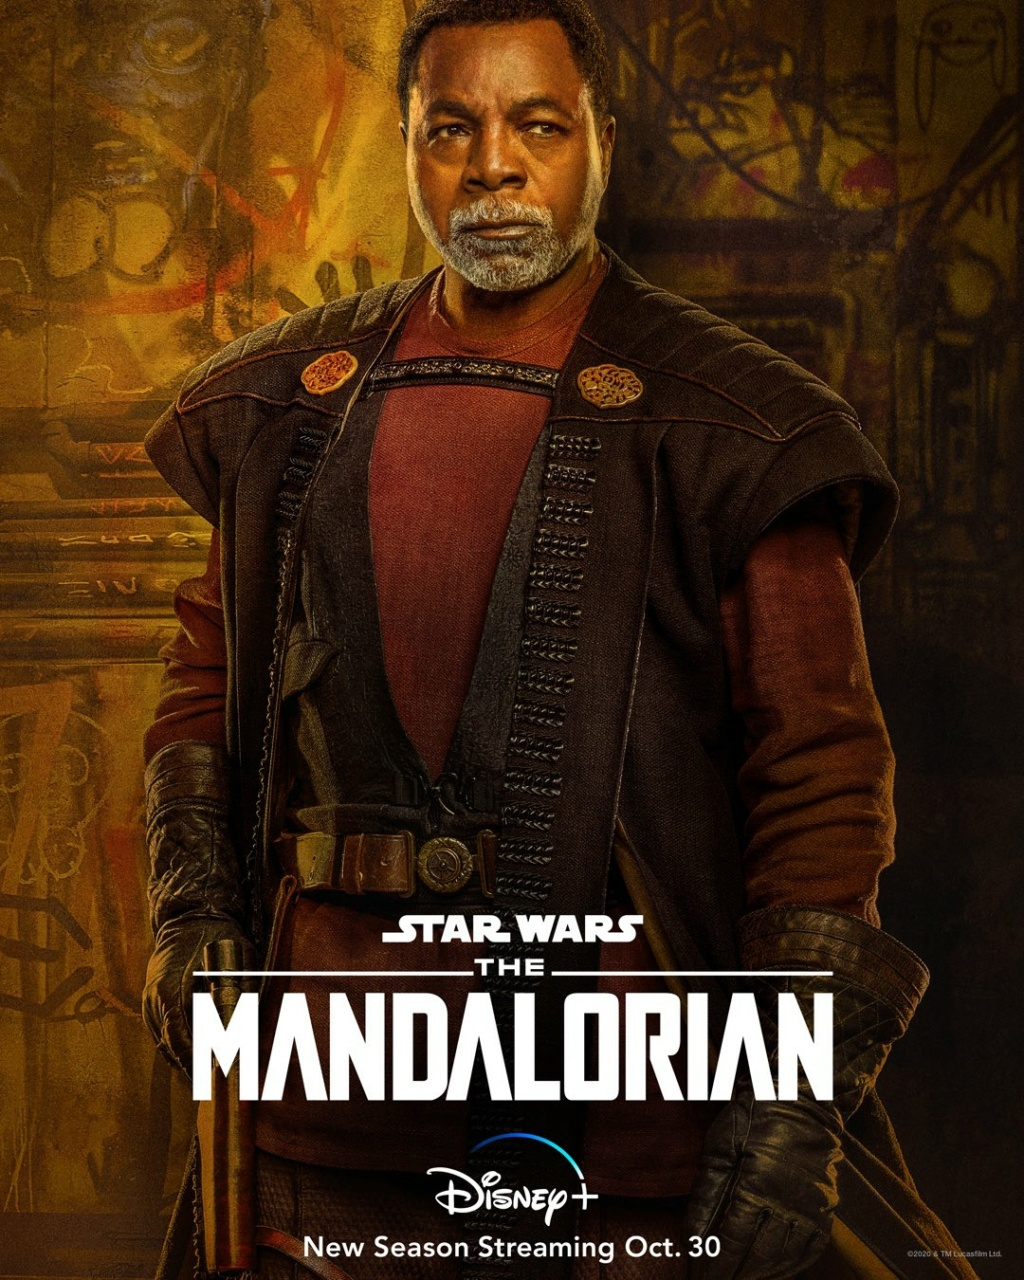 Les NEWS de la saison 2 de Star Wars The Mandalorian  - Page 2 Img_2066